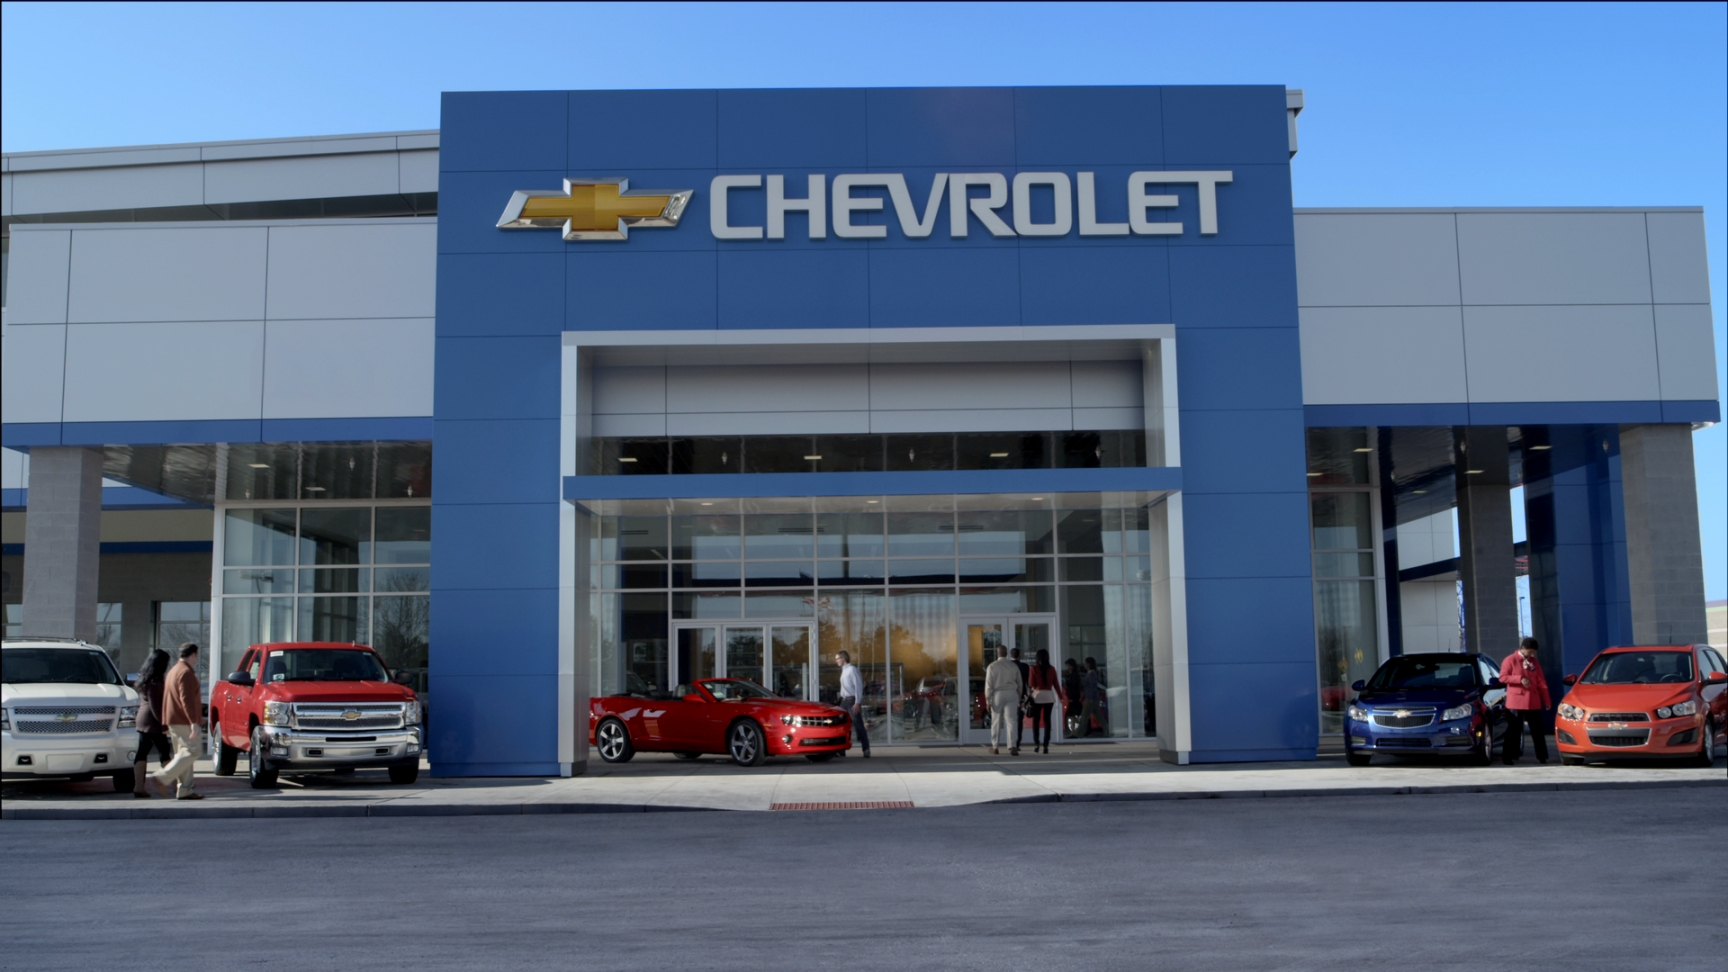 picture of the main entrance of Chevrolet dealership